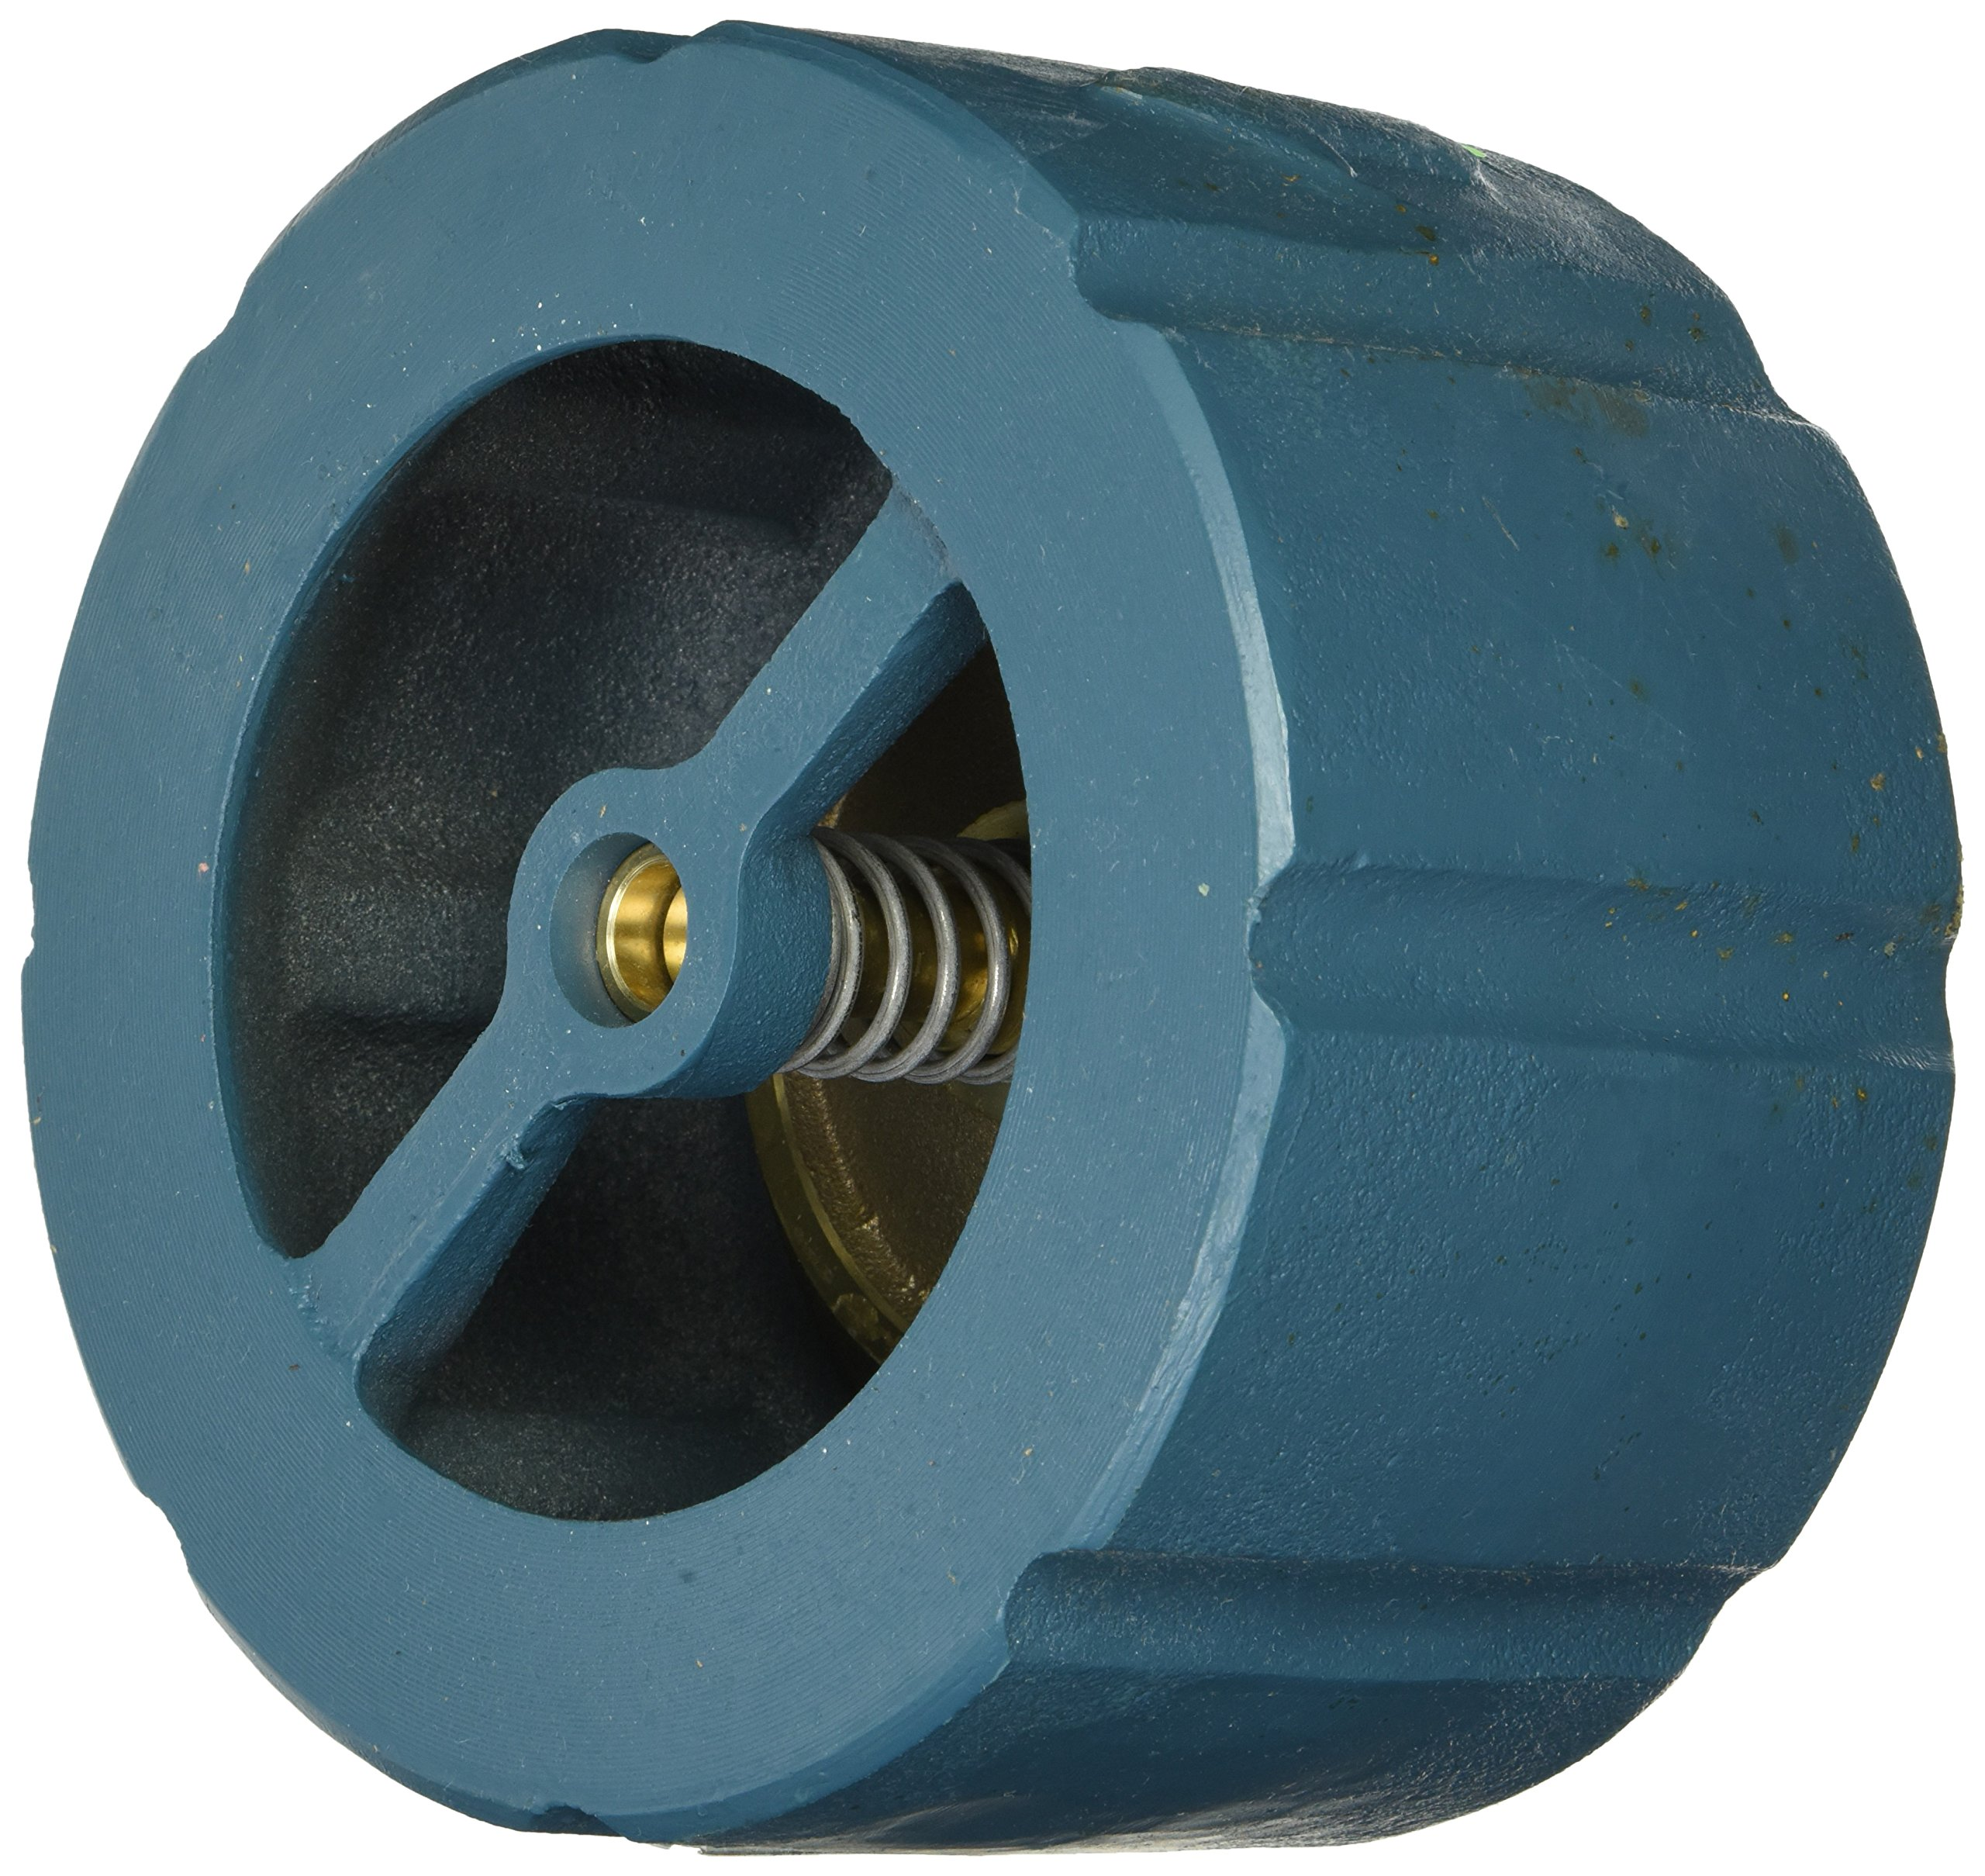 NIBCO  W910B-LF/W960B-LF Silent Wafer Check Valve   Lead-Free, Class 125, Iron Body, Bronze Seat and Disc, 4''